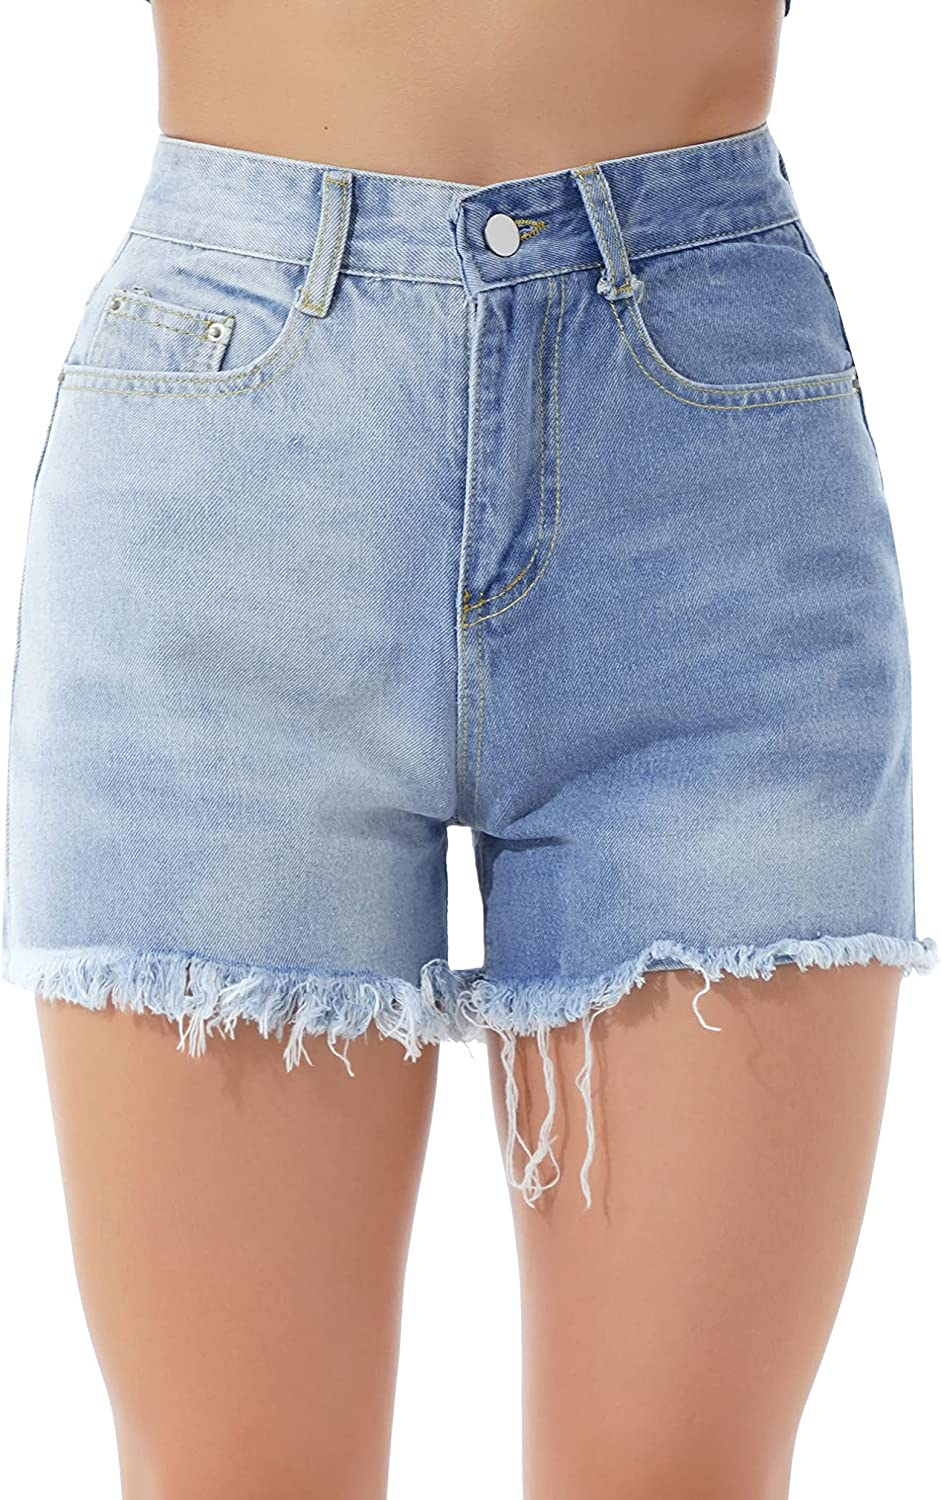 ranrann Womens Patchwork Denim Shorts High Waist Contrast Color Washed Distressed Sexy Short Jeans